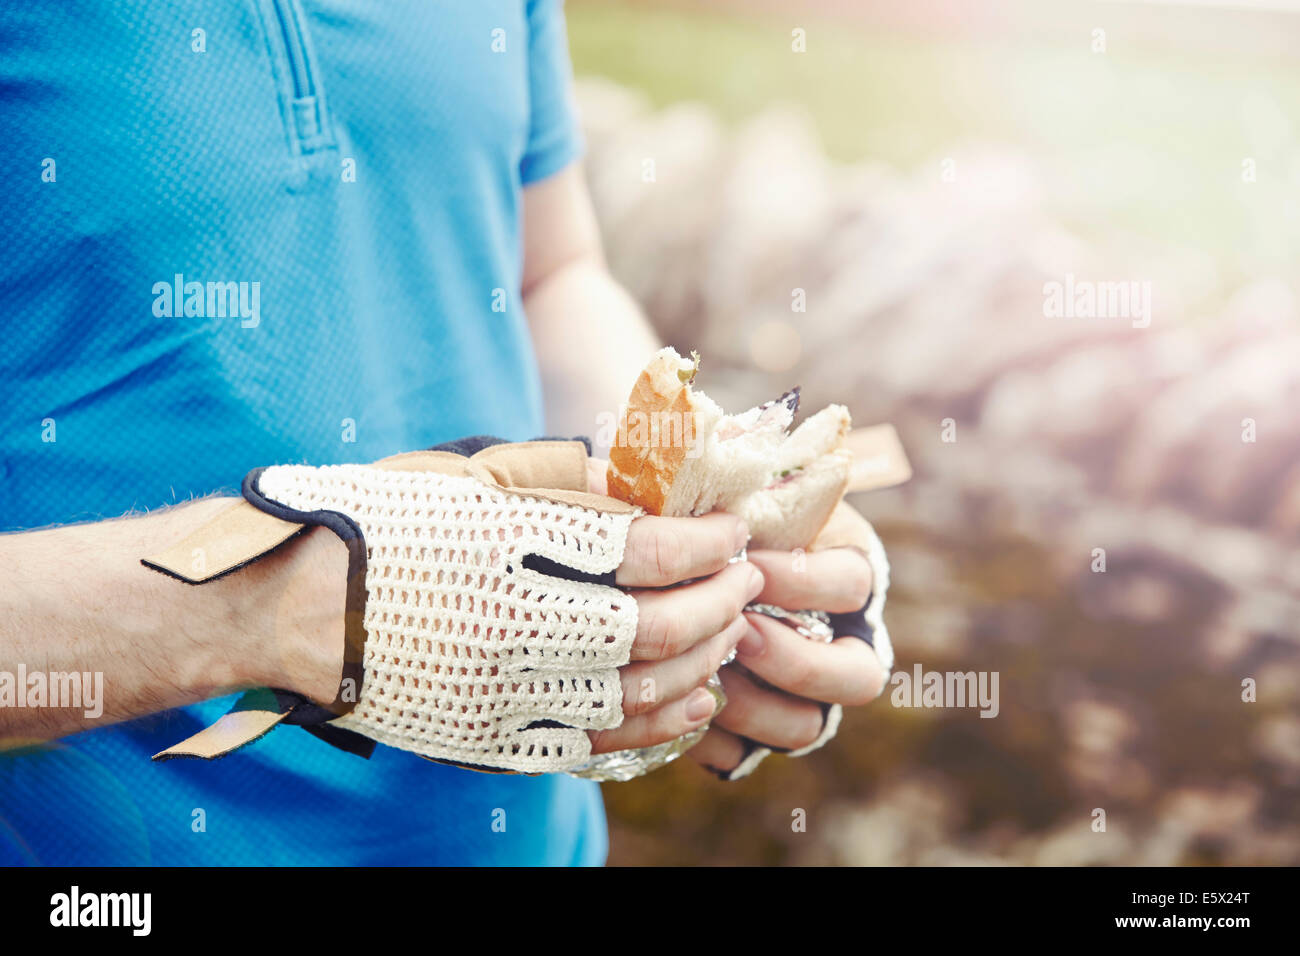 Cyclist holding sandwich with gloved hands - Stock Image